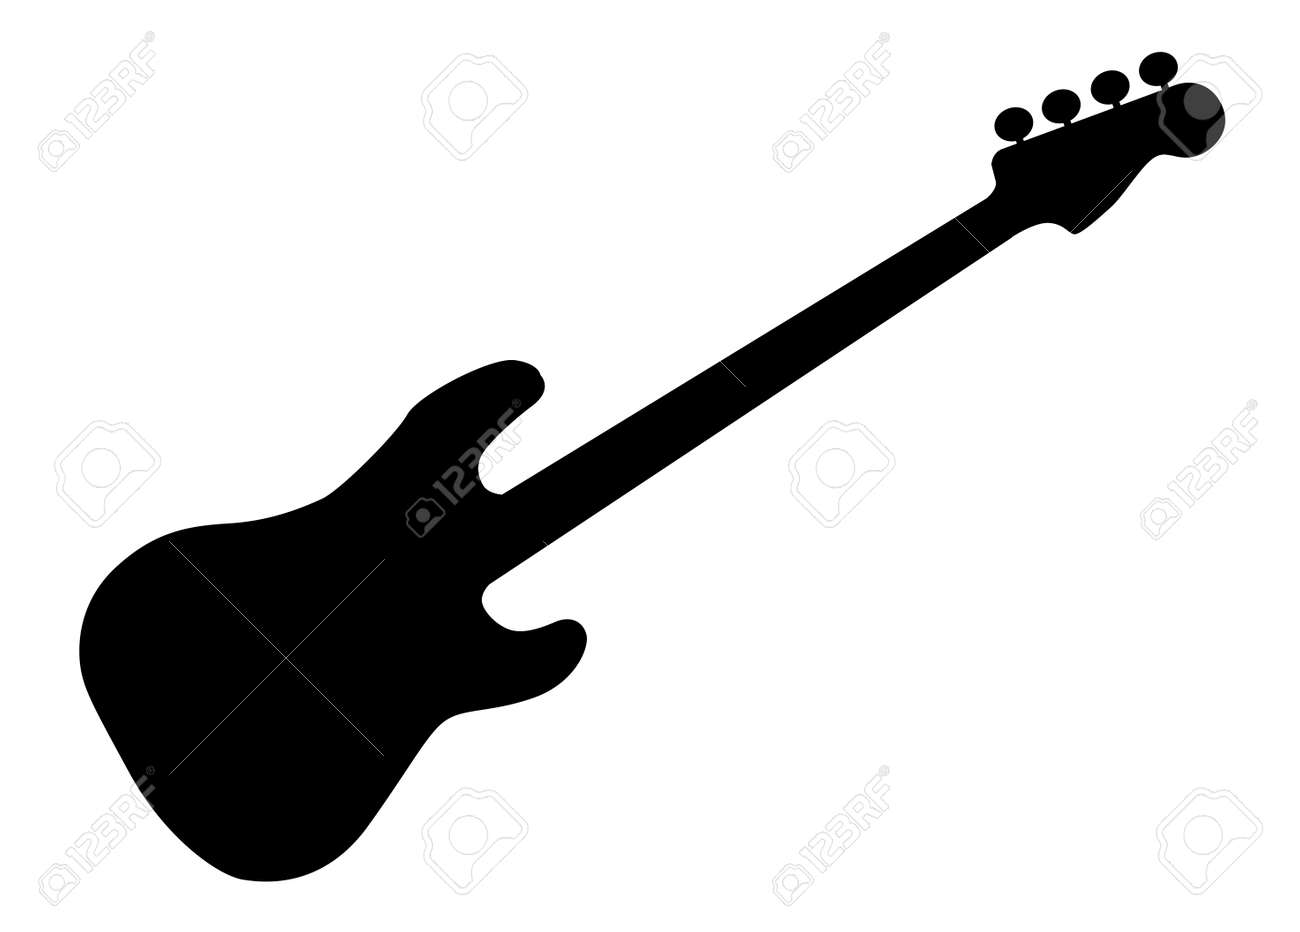 silhouette of a generic bass guitar isolated over a white background rh 123rf com acoustic guitar silhouette vector free guitar man silhouette vector